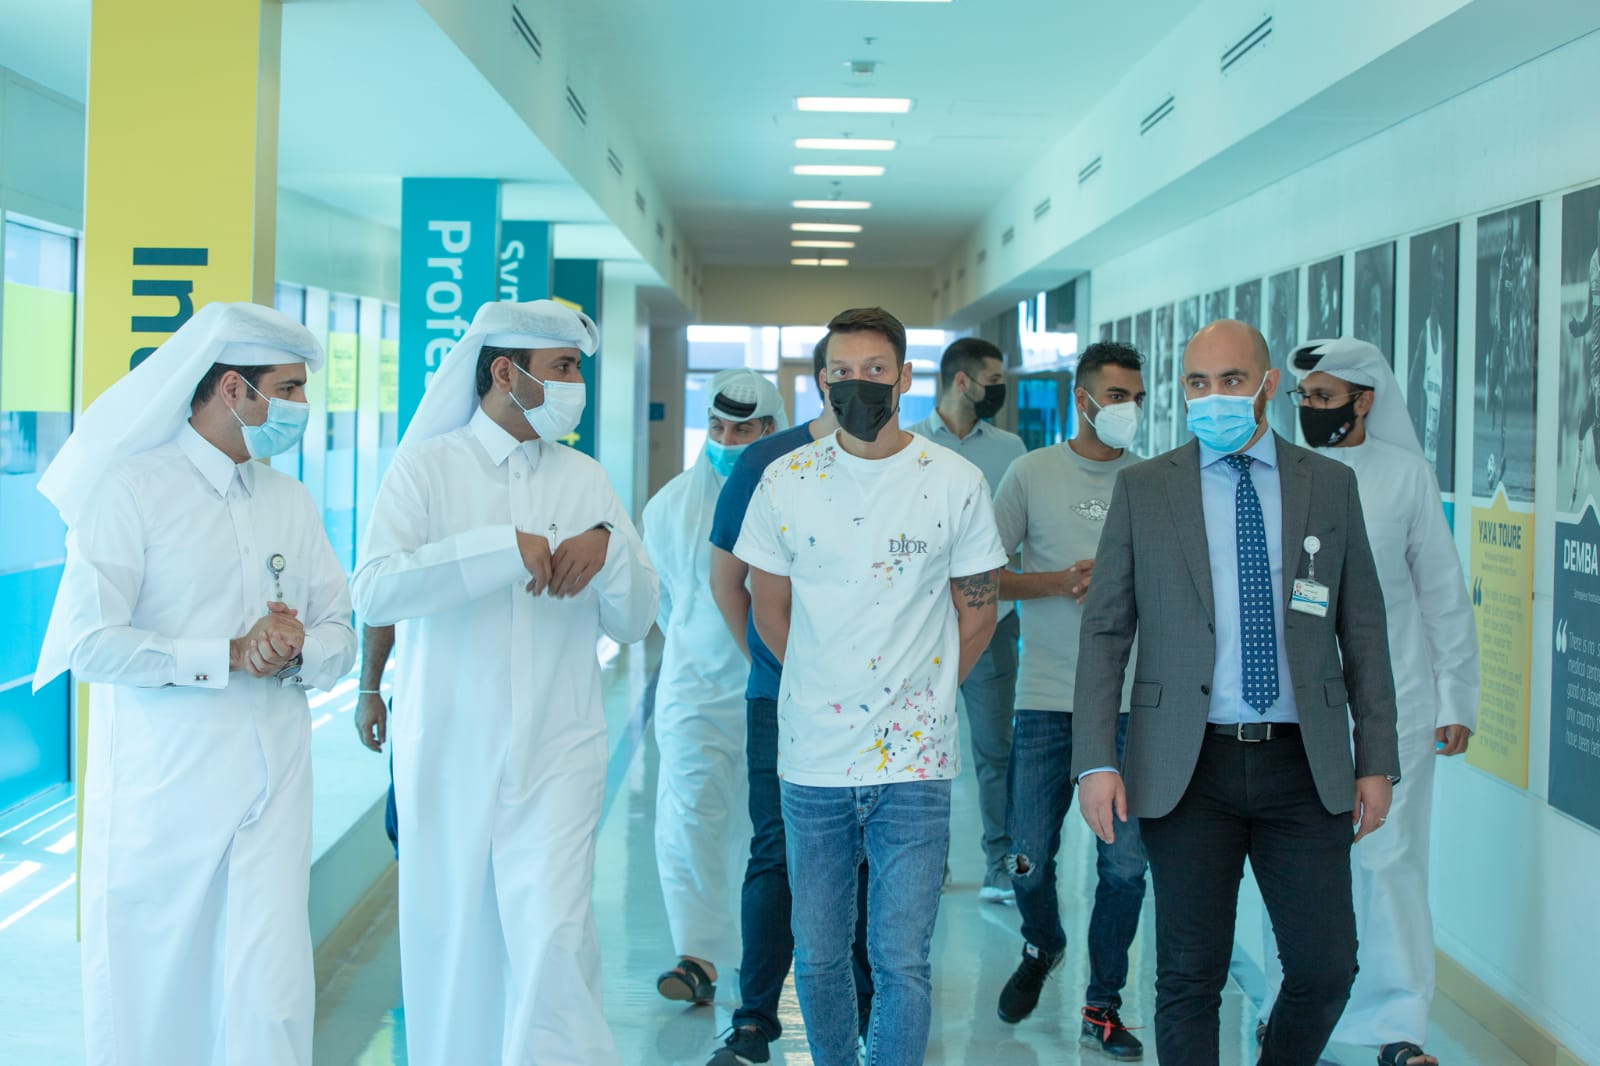 German Footballer Mesut Ozil Impressed by Aspetar Services and Facilities